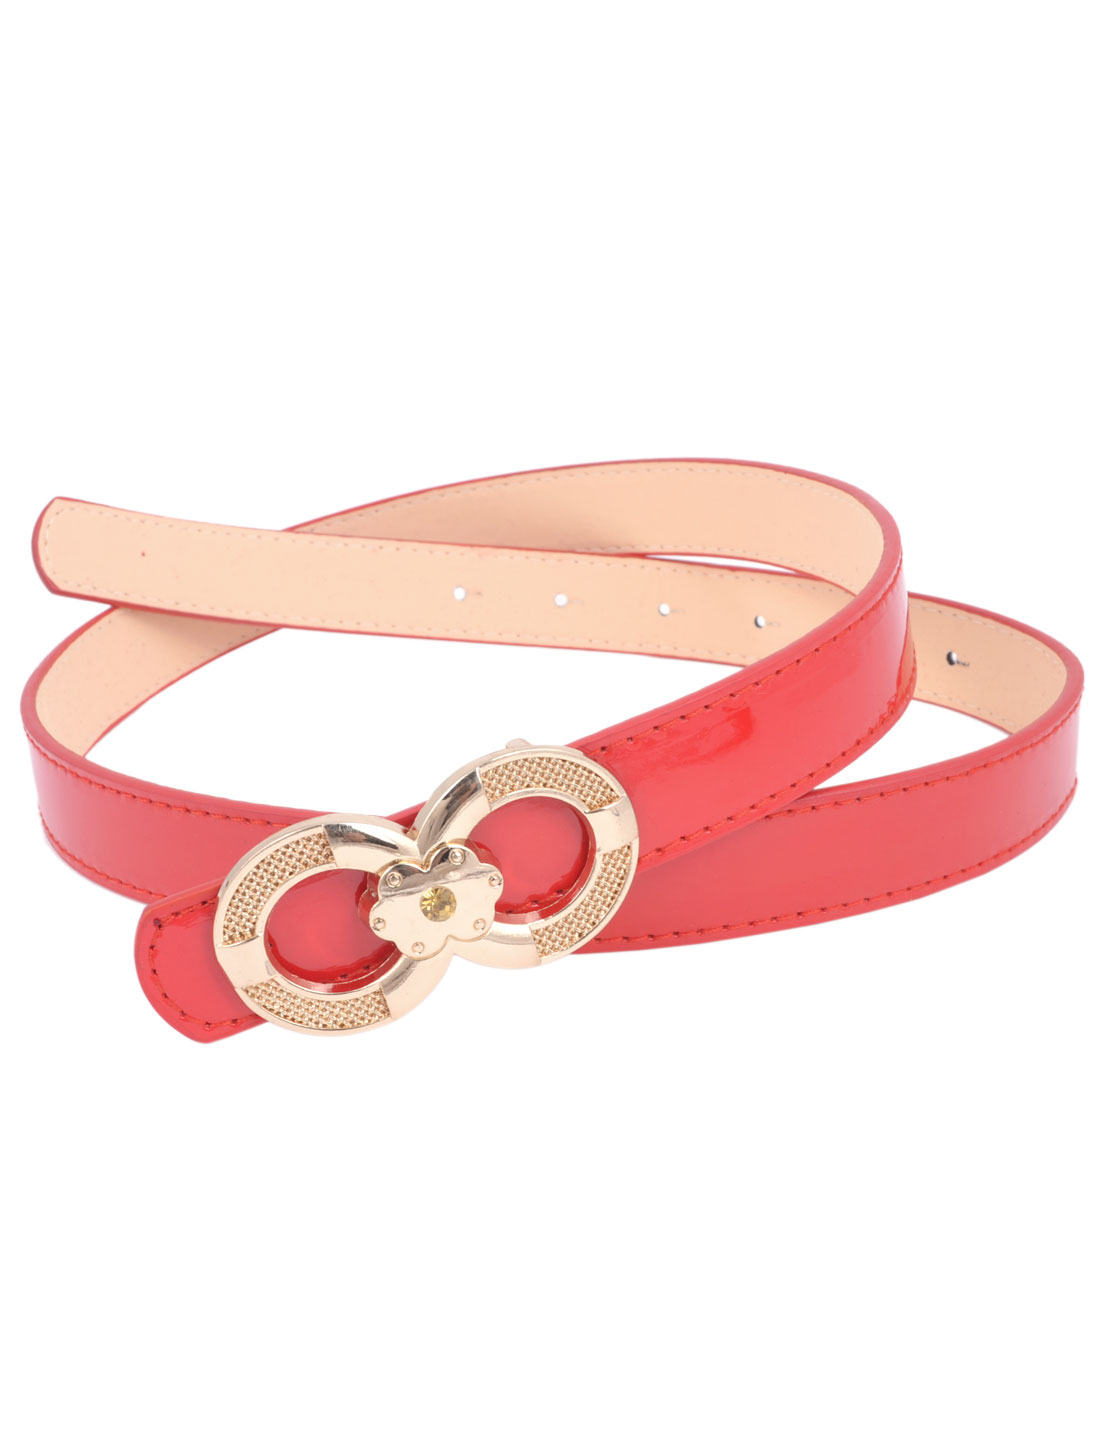 Adjustable 8 Style Press Buckle Red Patent Leather Belt Jeans Decor for Women